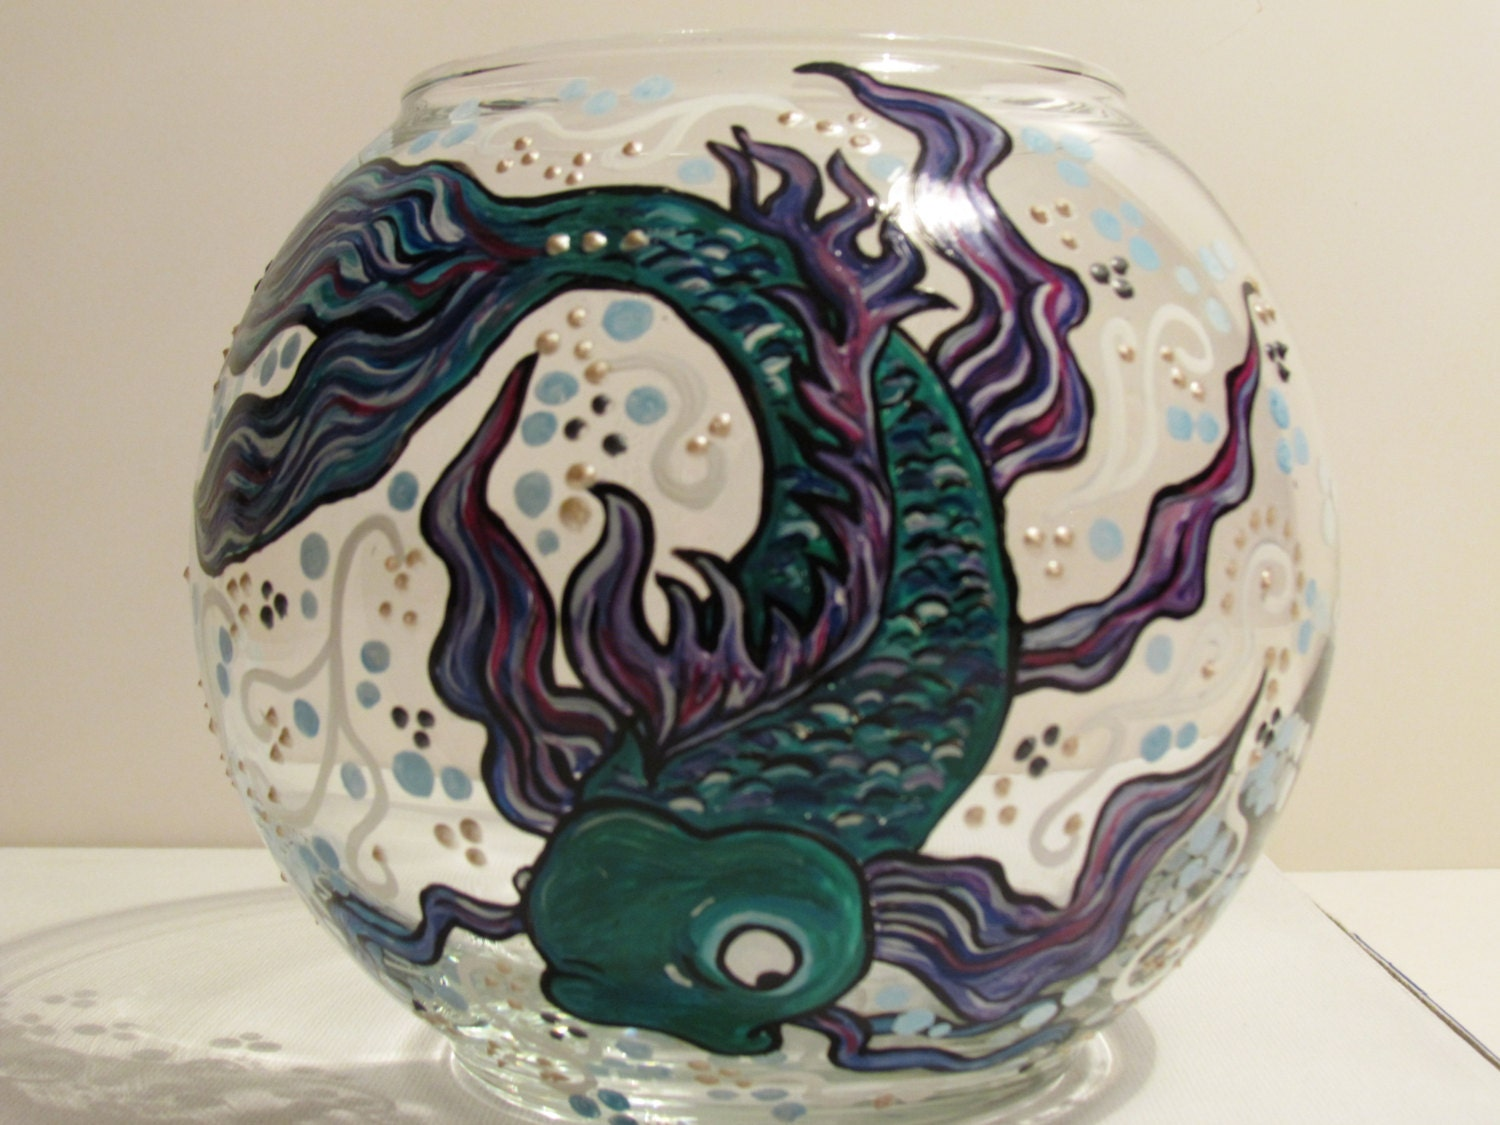 Koi fish glass bowl hand painted by roxybeedesign on etsy for Painted glass fish